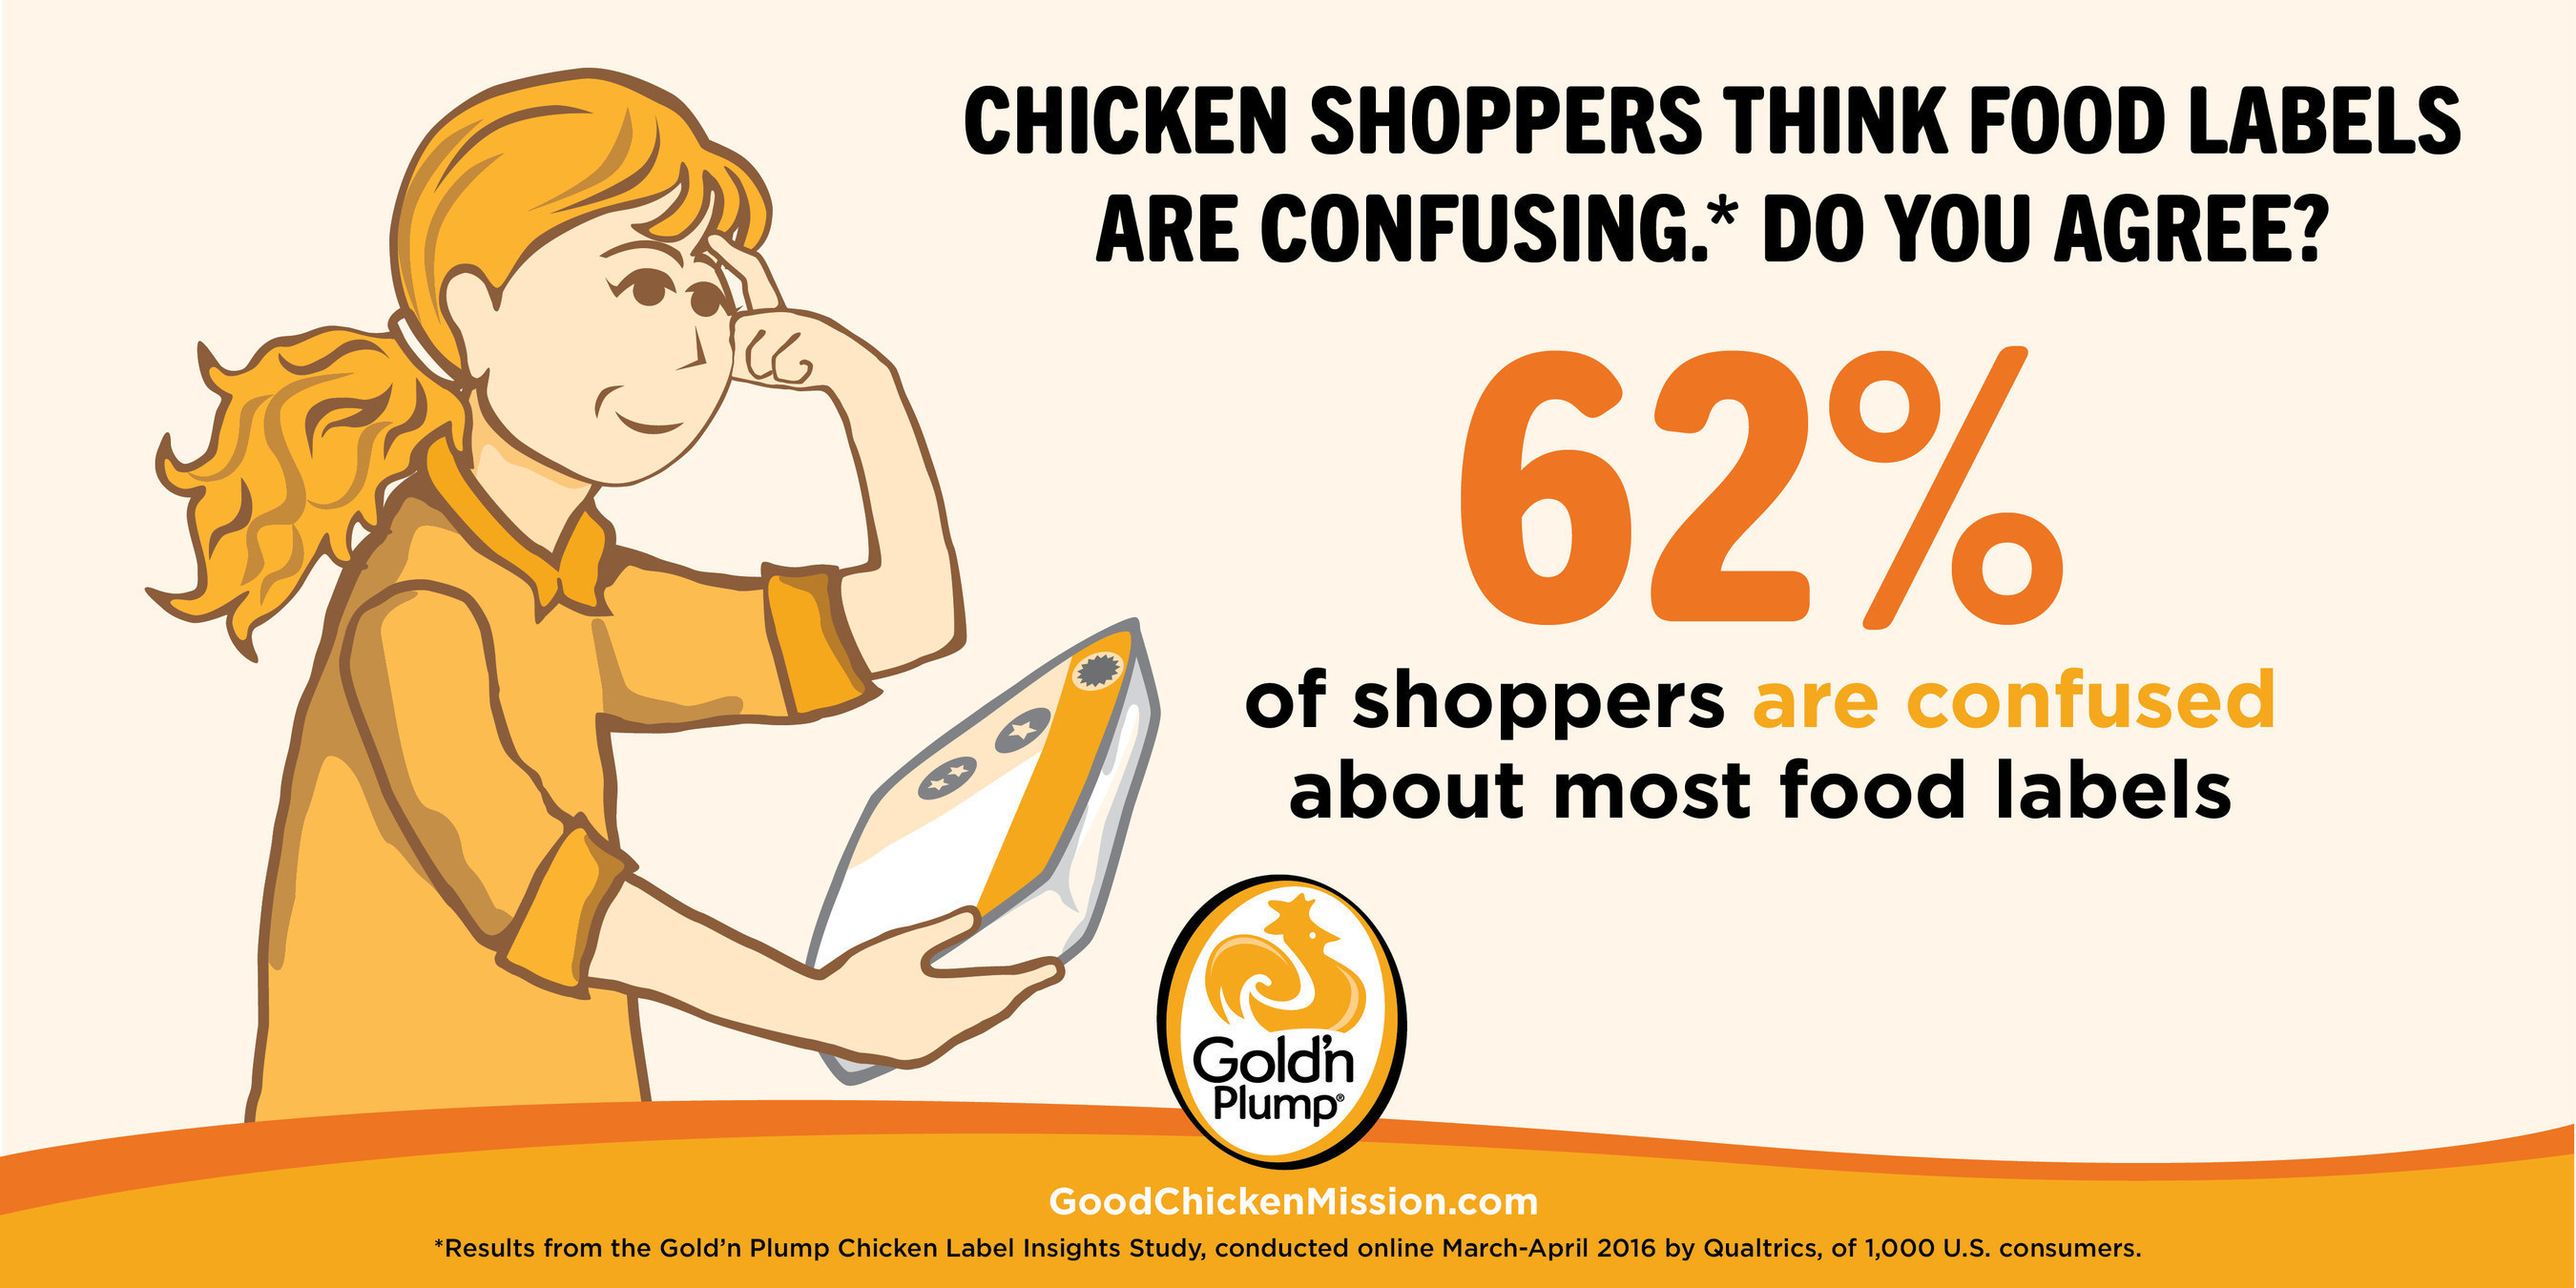 The Gold'n Plump(R) Chicken Label Insights Study reveals 62 percent of chicken shoppers are confused by food labels.The brand also launches tools for chicken shoppers to help define new label claims as No Antibiotics-Ever and American Humane Certified(TM) attributes are added to the Gold'n Plump All Natural line of chicken.